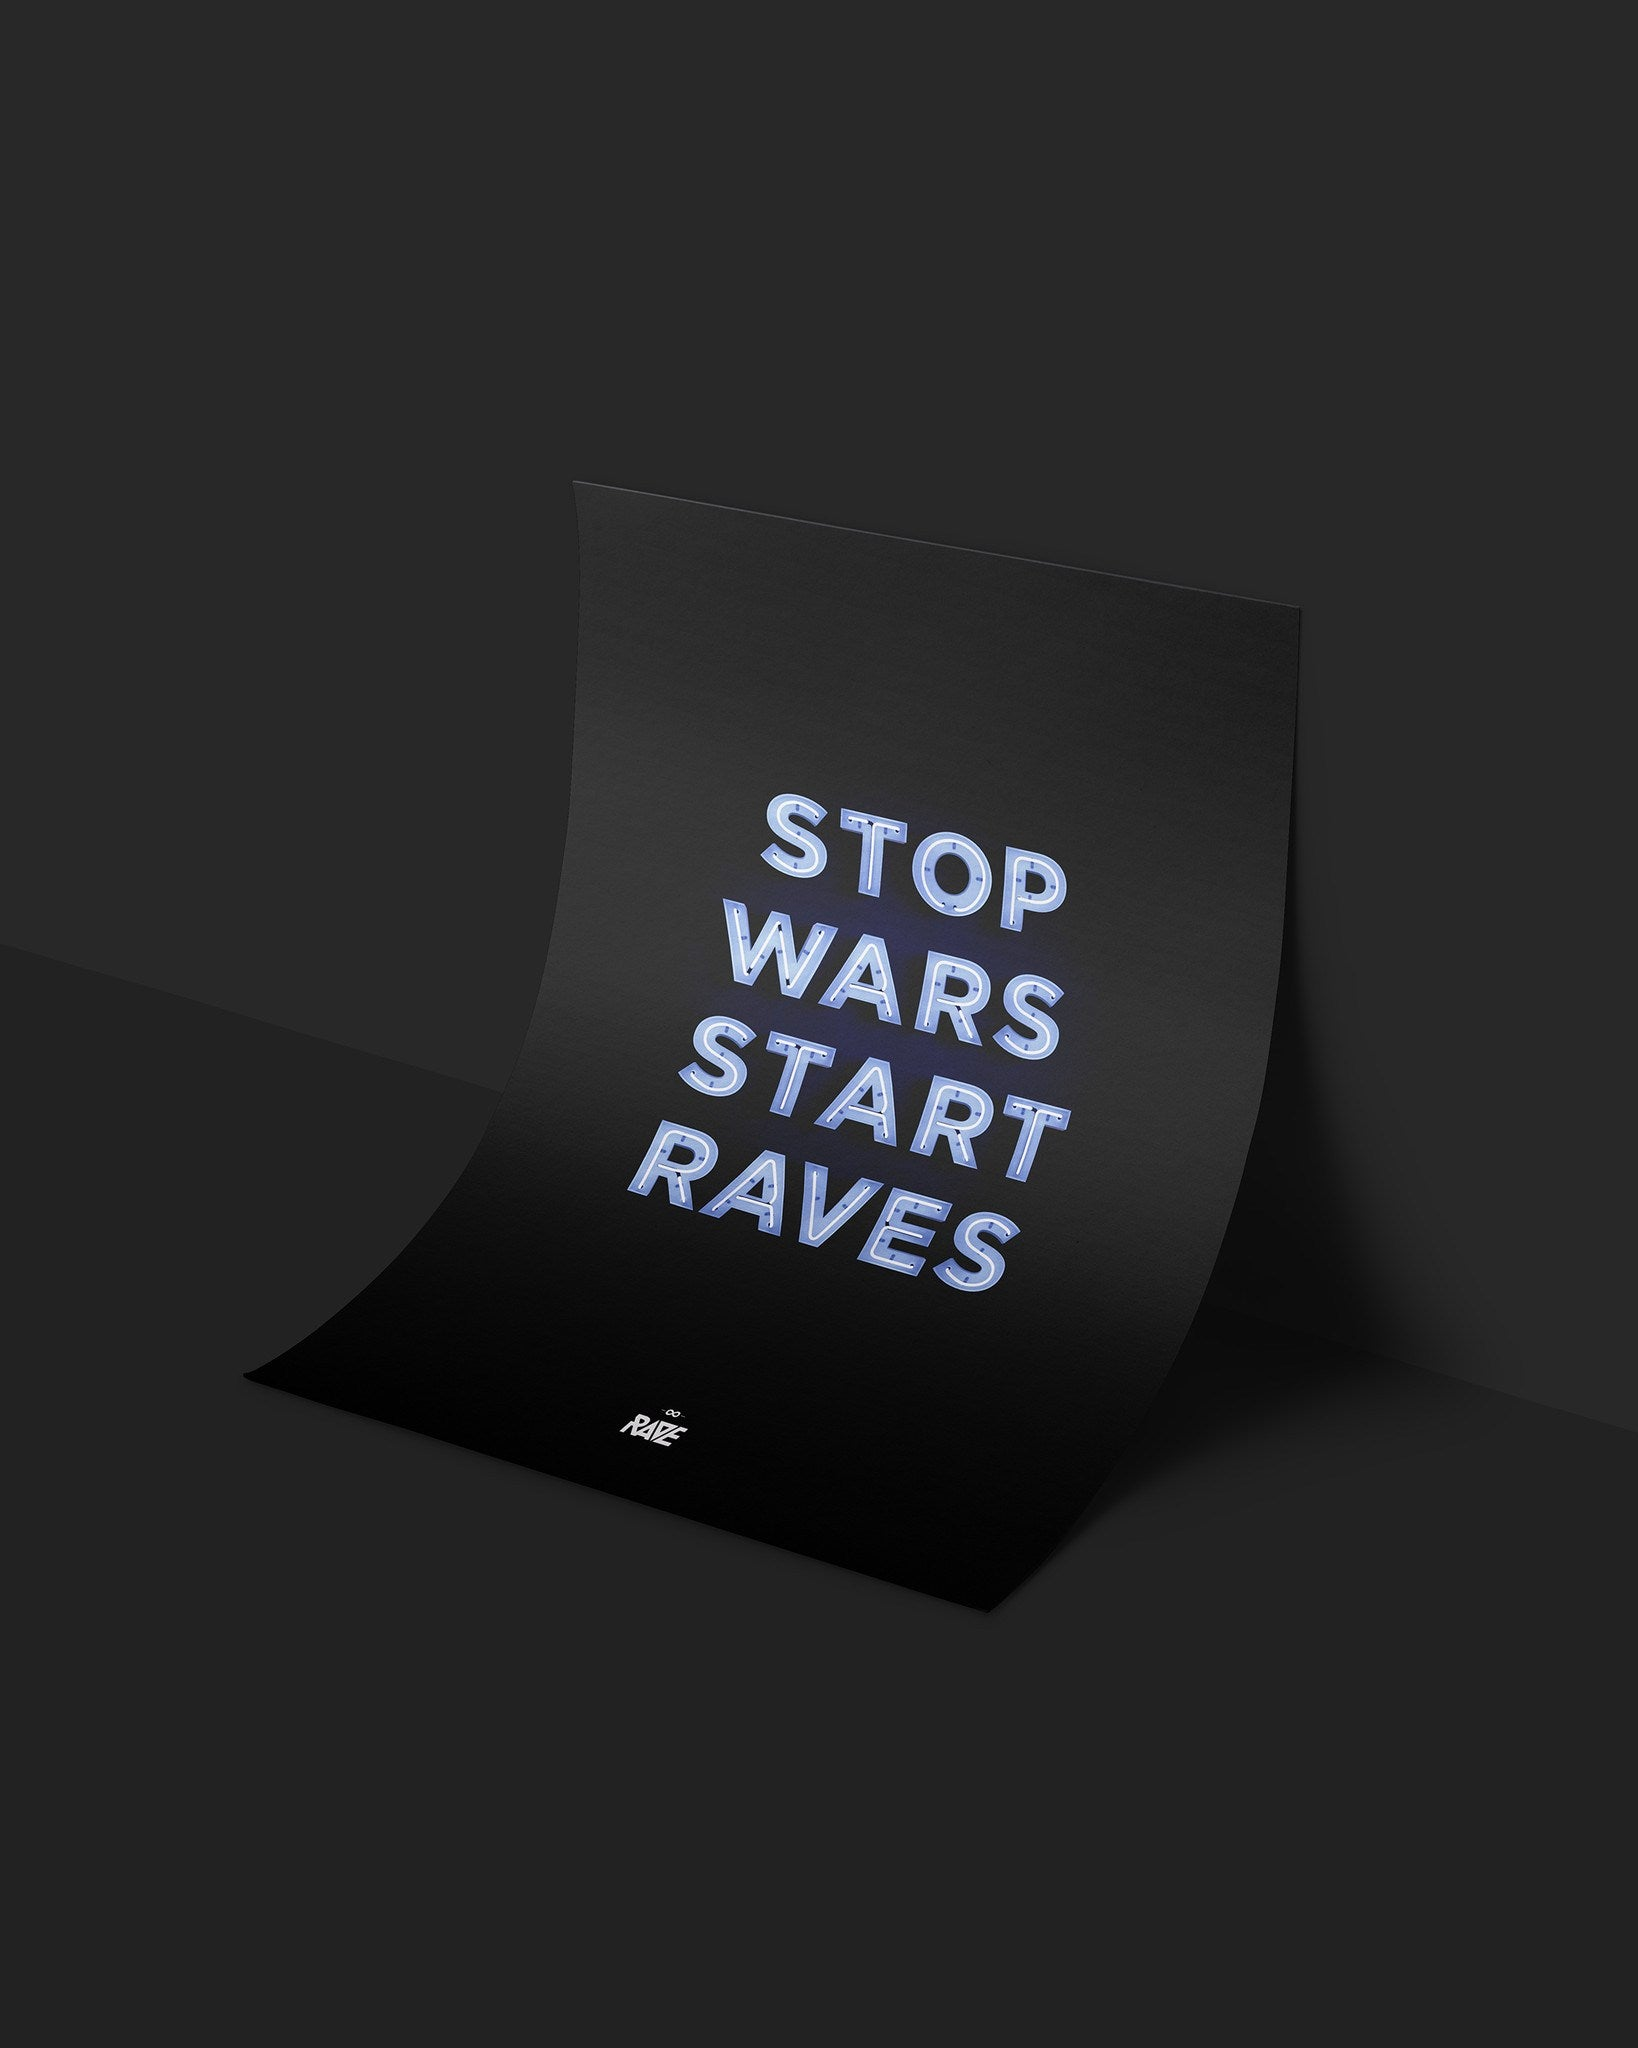 Techno poster with Stop Wars Start Raves saying